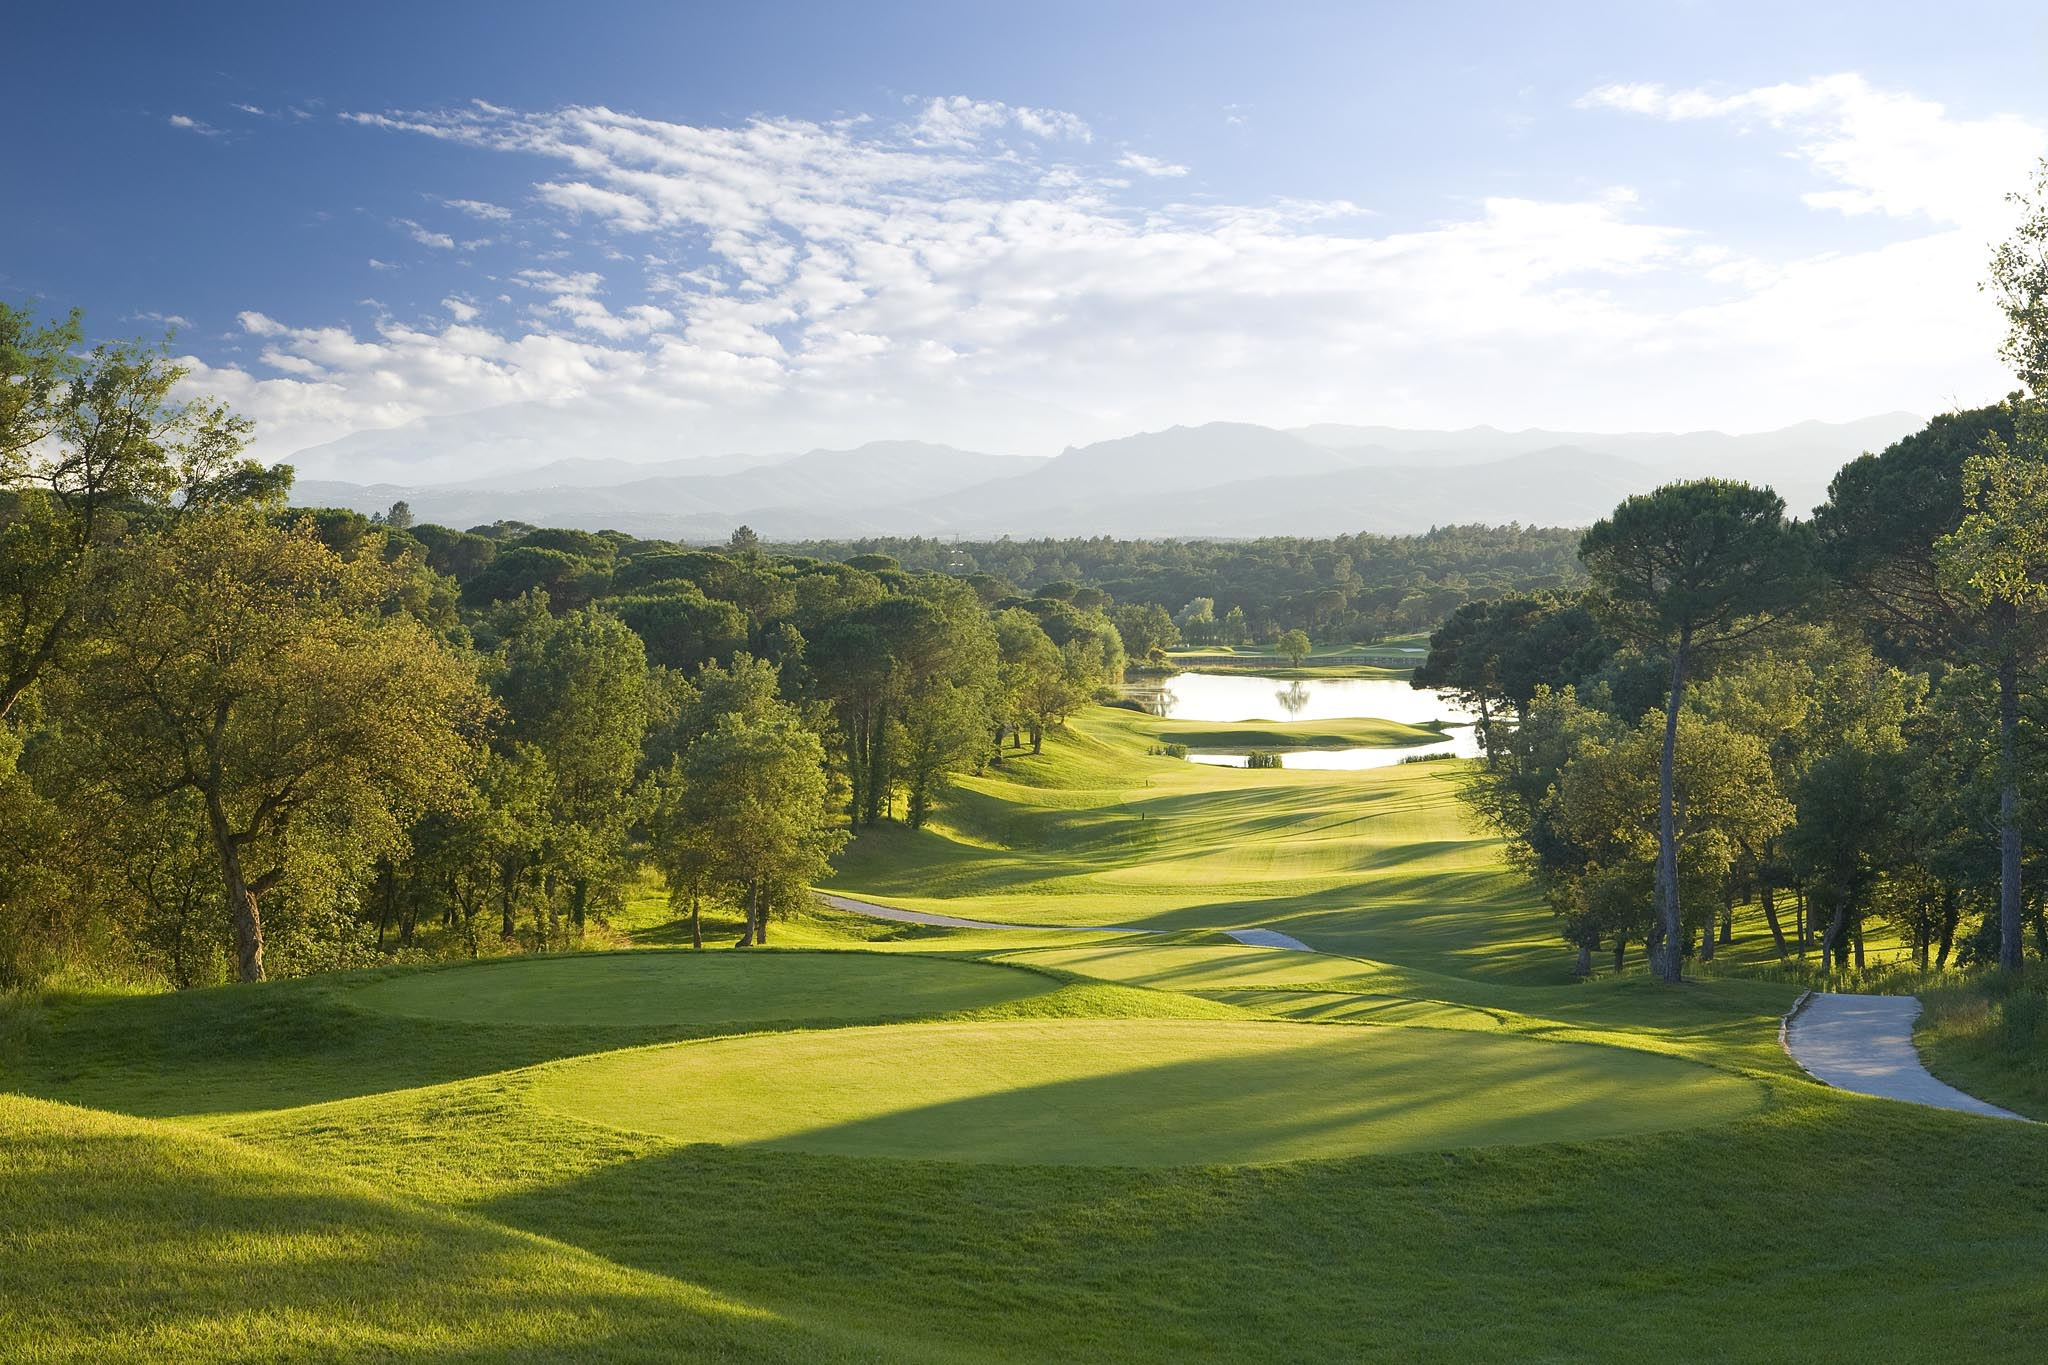 pga-catalunya-home-golf871.jpg